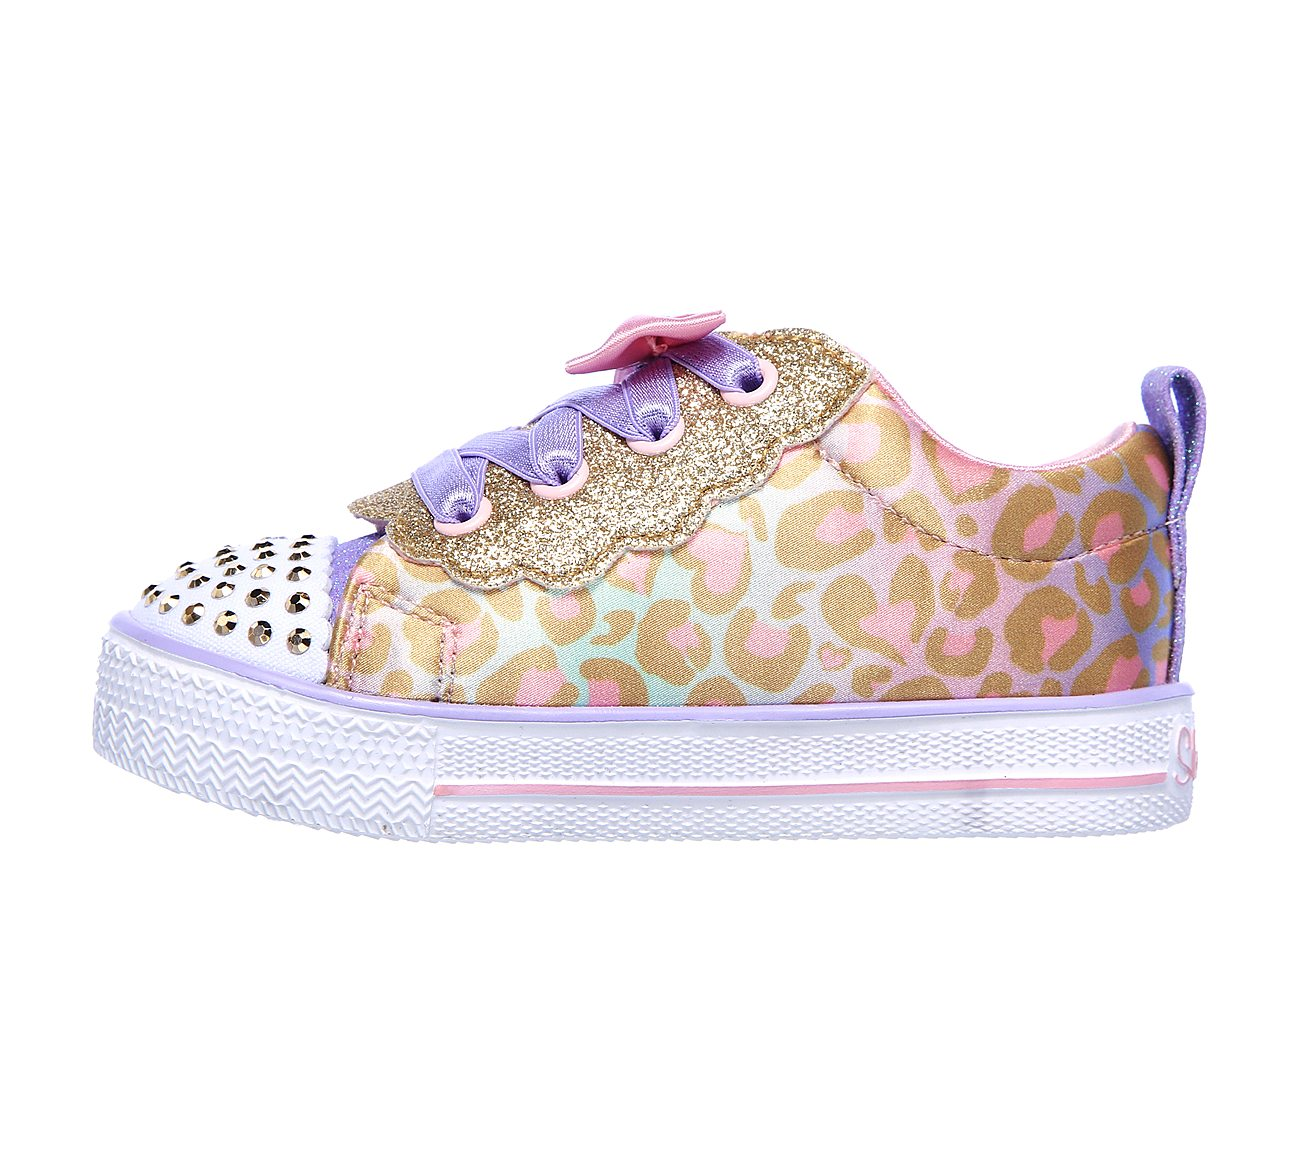 Sketchers-sweet-spot-twinkle-toes-light-pink-other-side-view